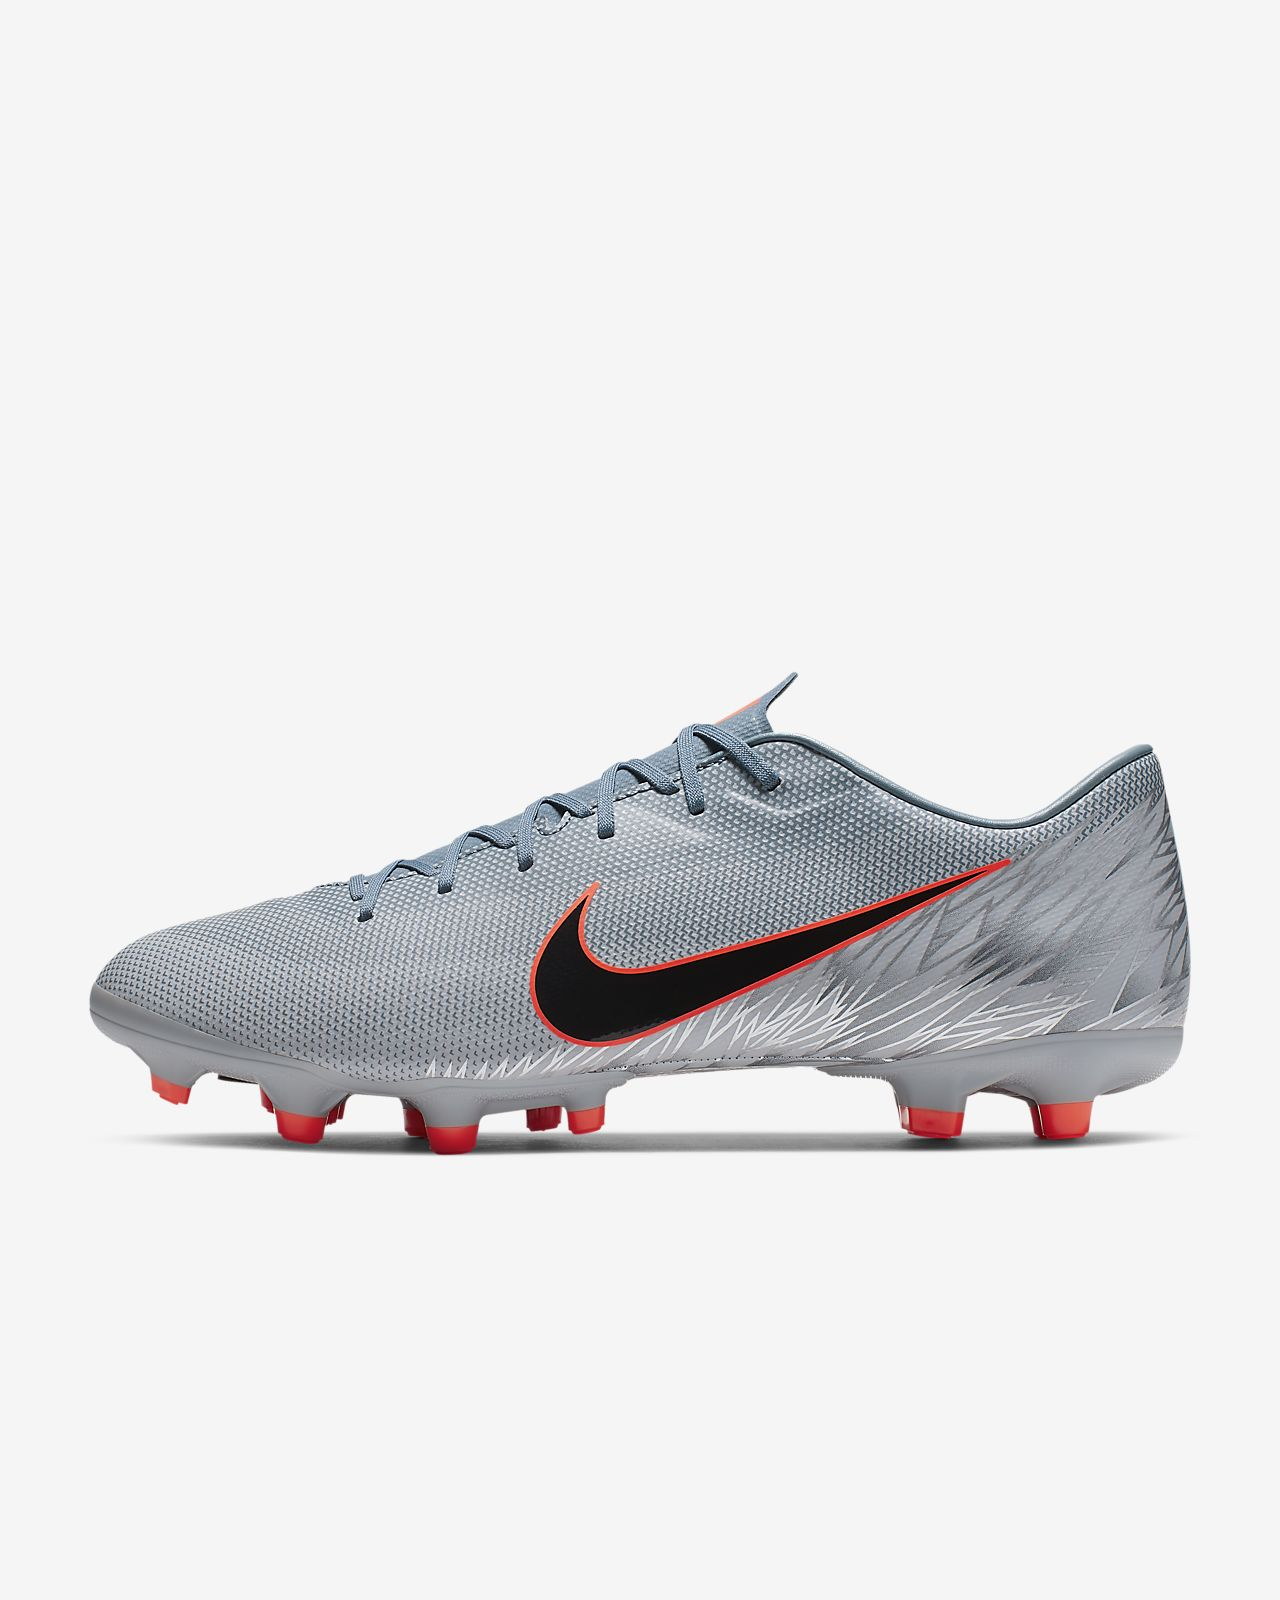 91e29c80c Nike Vapor 12 Academy MG Multi-Ground Football Boot. Nike.com GB